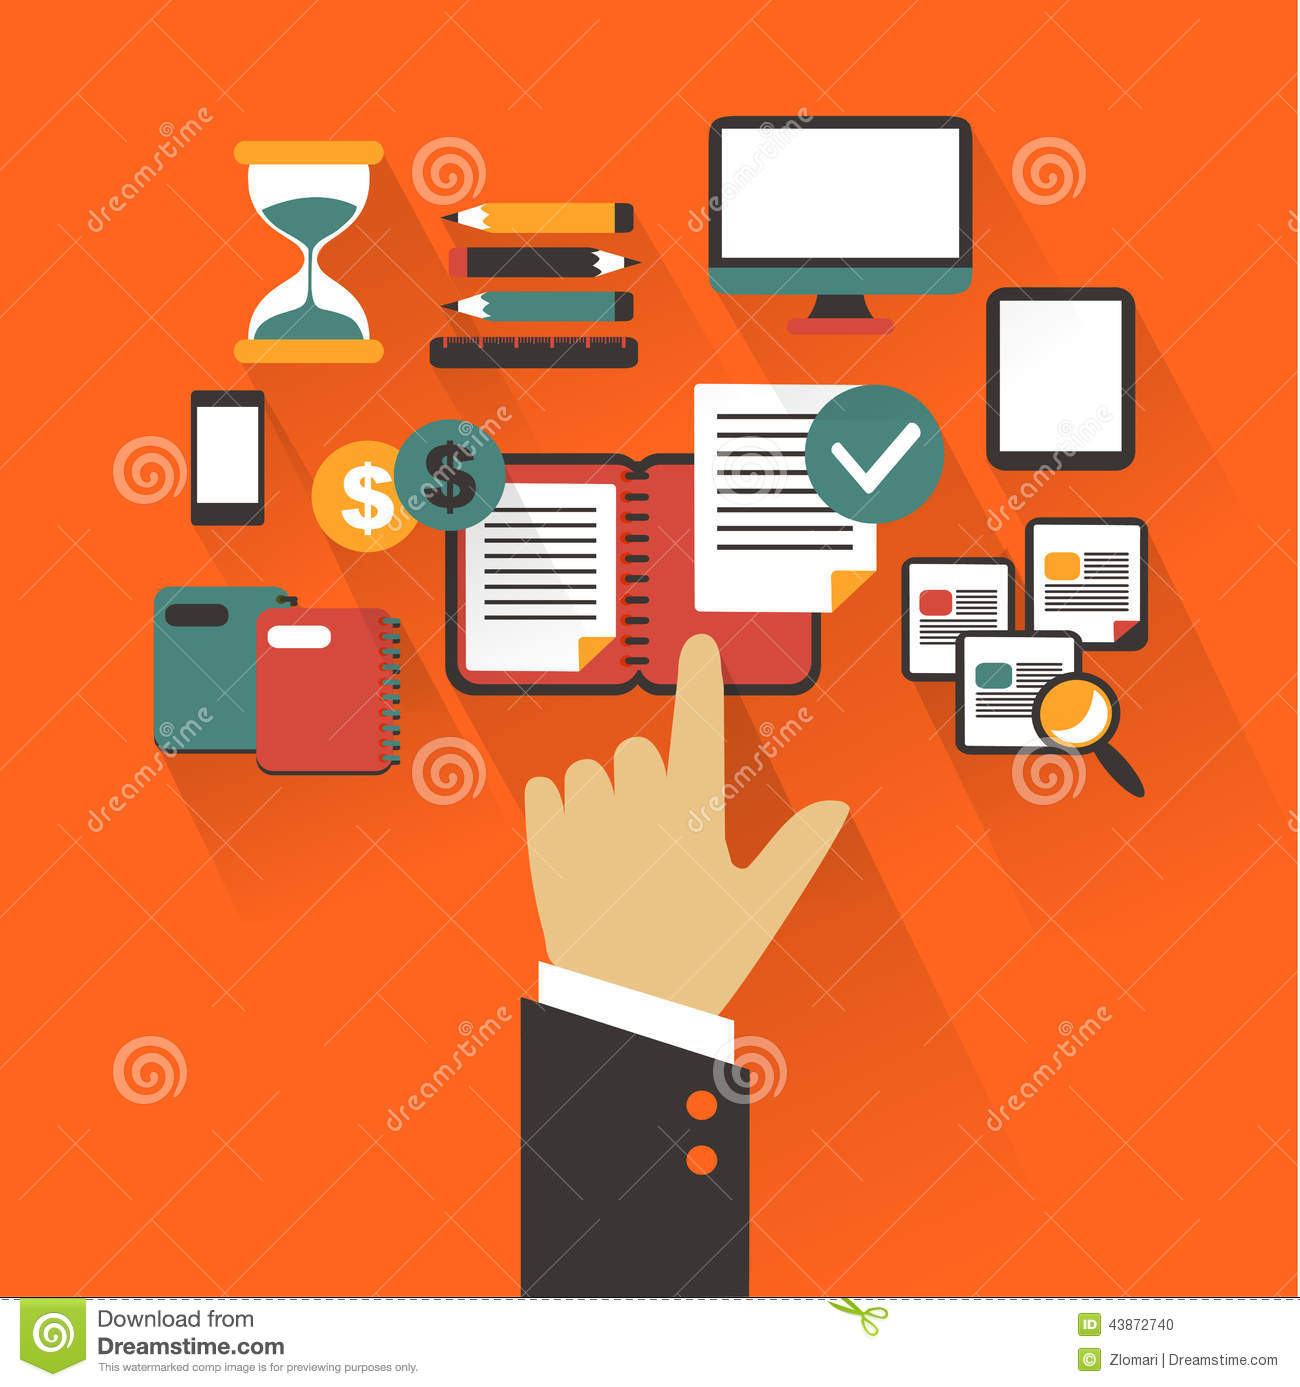 Flat design. Business concept with hand. Writing infographic